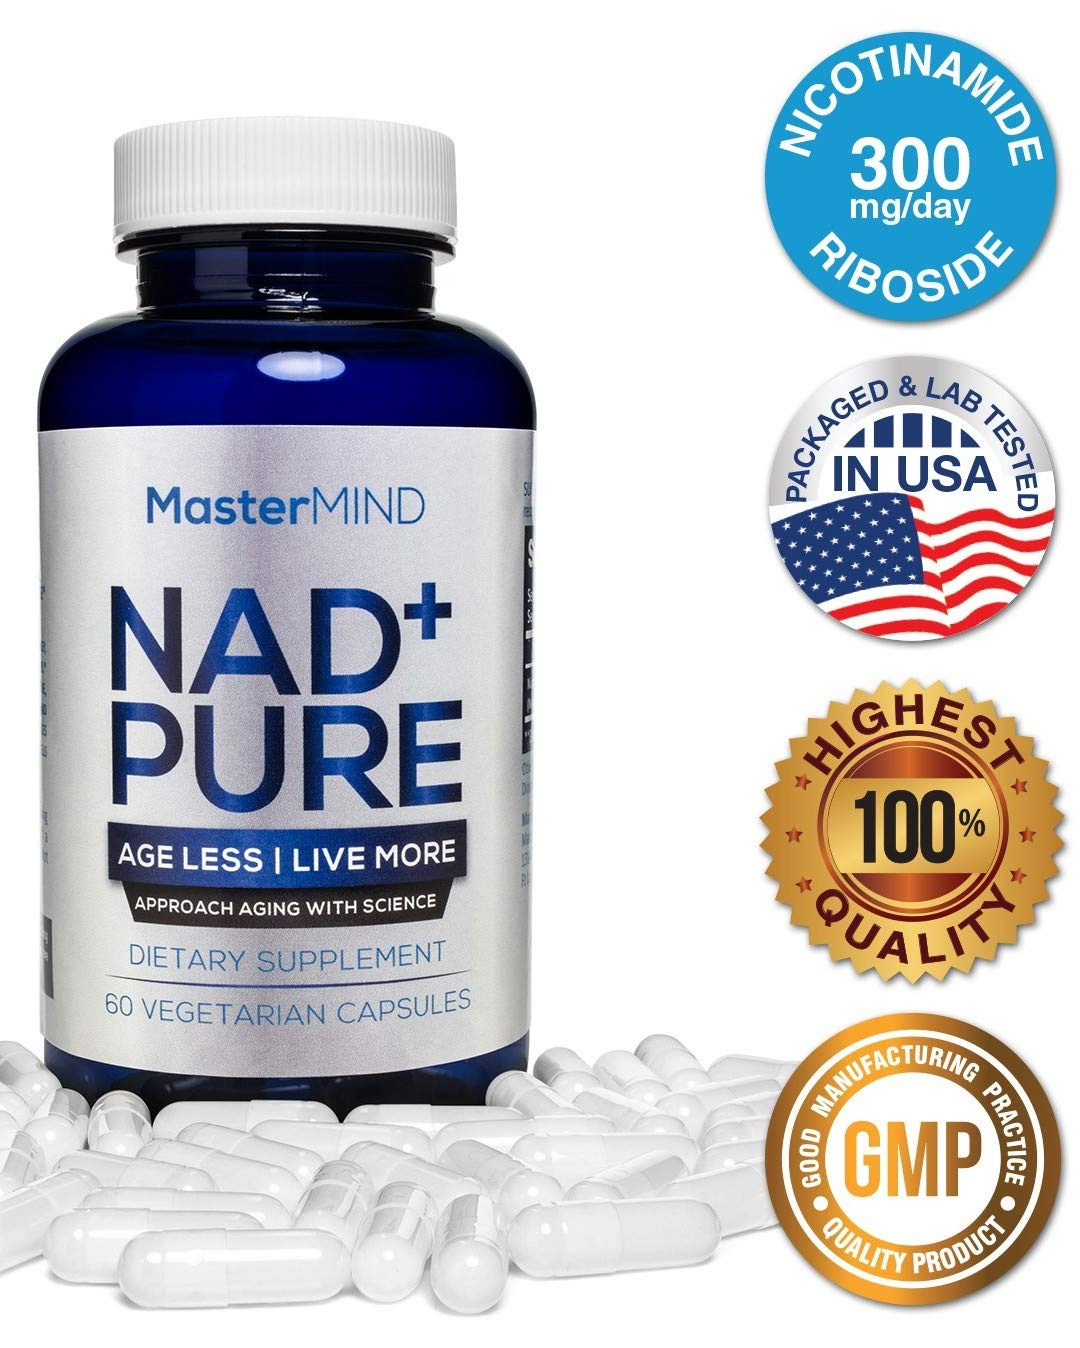 NAD+ Pure I Nicotinamide Riboside I Advanced NAD+ Booster I 300mg Serving   Promotes Anti Aging, Increases Energy, Boost Metabolism, Helps Muscle Recovery & Reduces Stress   Vitamin B3   60 Capsules